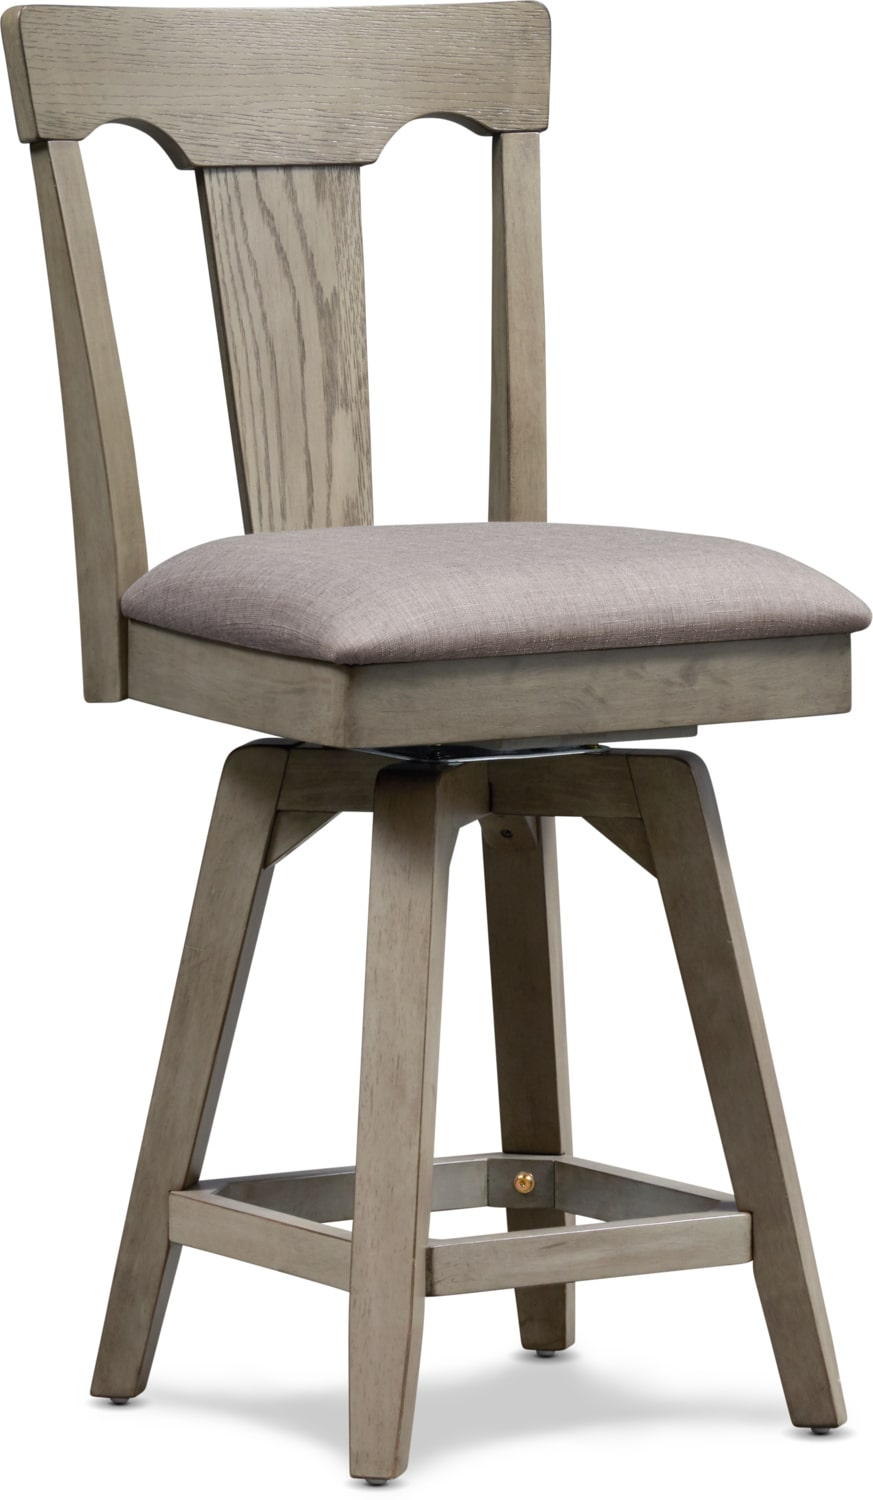 Dining Room Furniture - Maxton Counter-Height Stool - Graystone